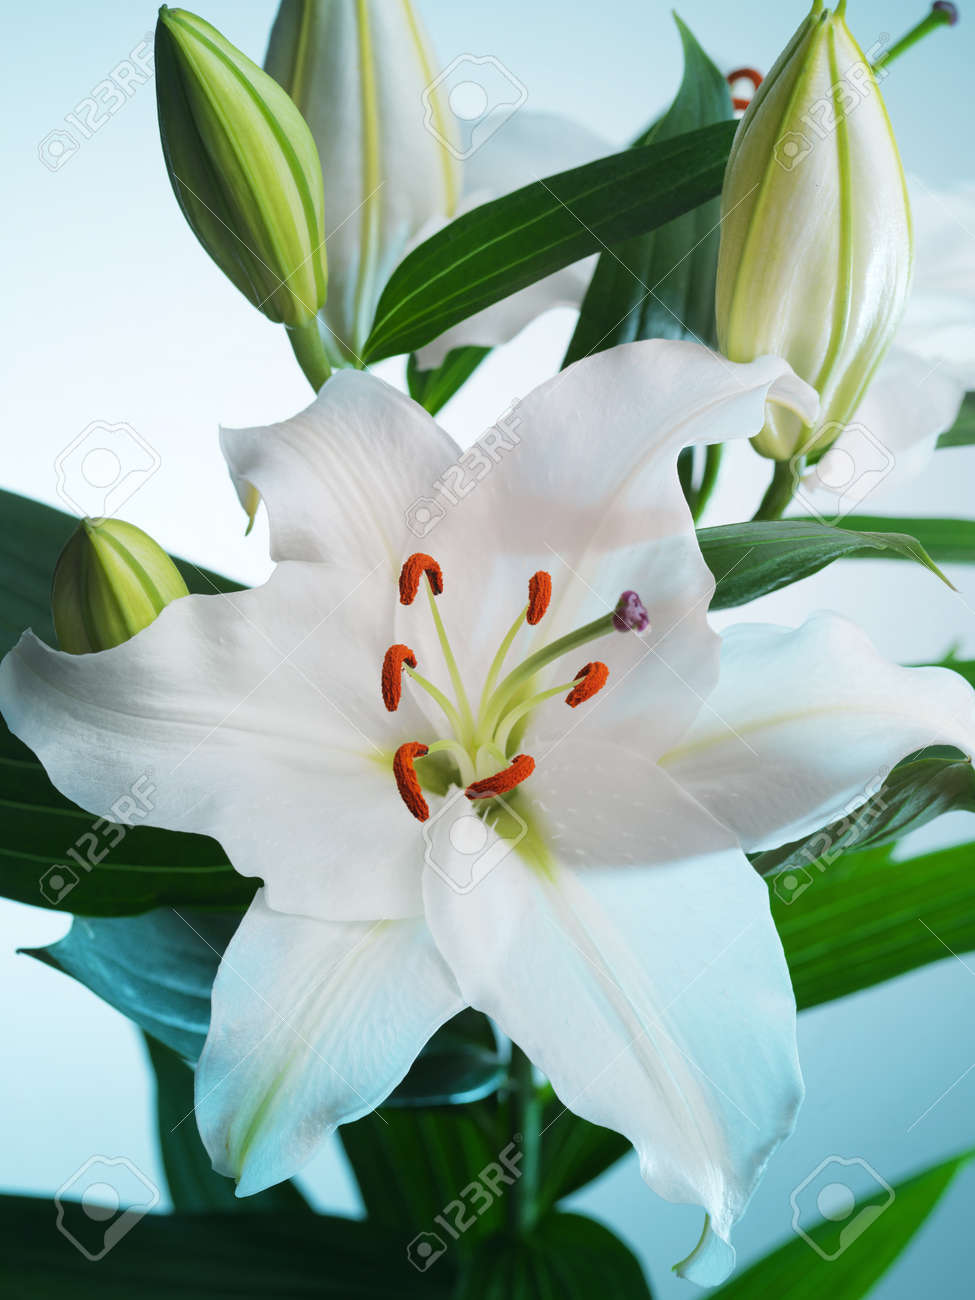 White lily flower on a blue background stock photo picture and stock photo white lily flower on a blue background izmirmasajfo